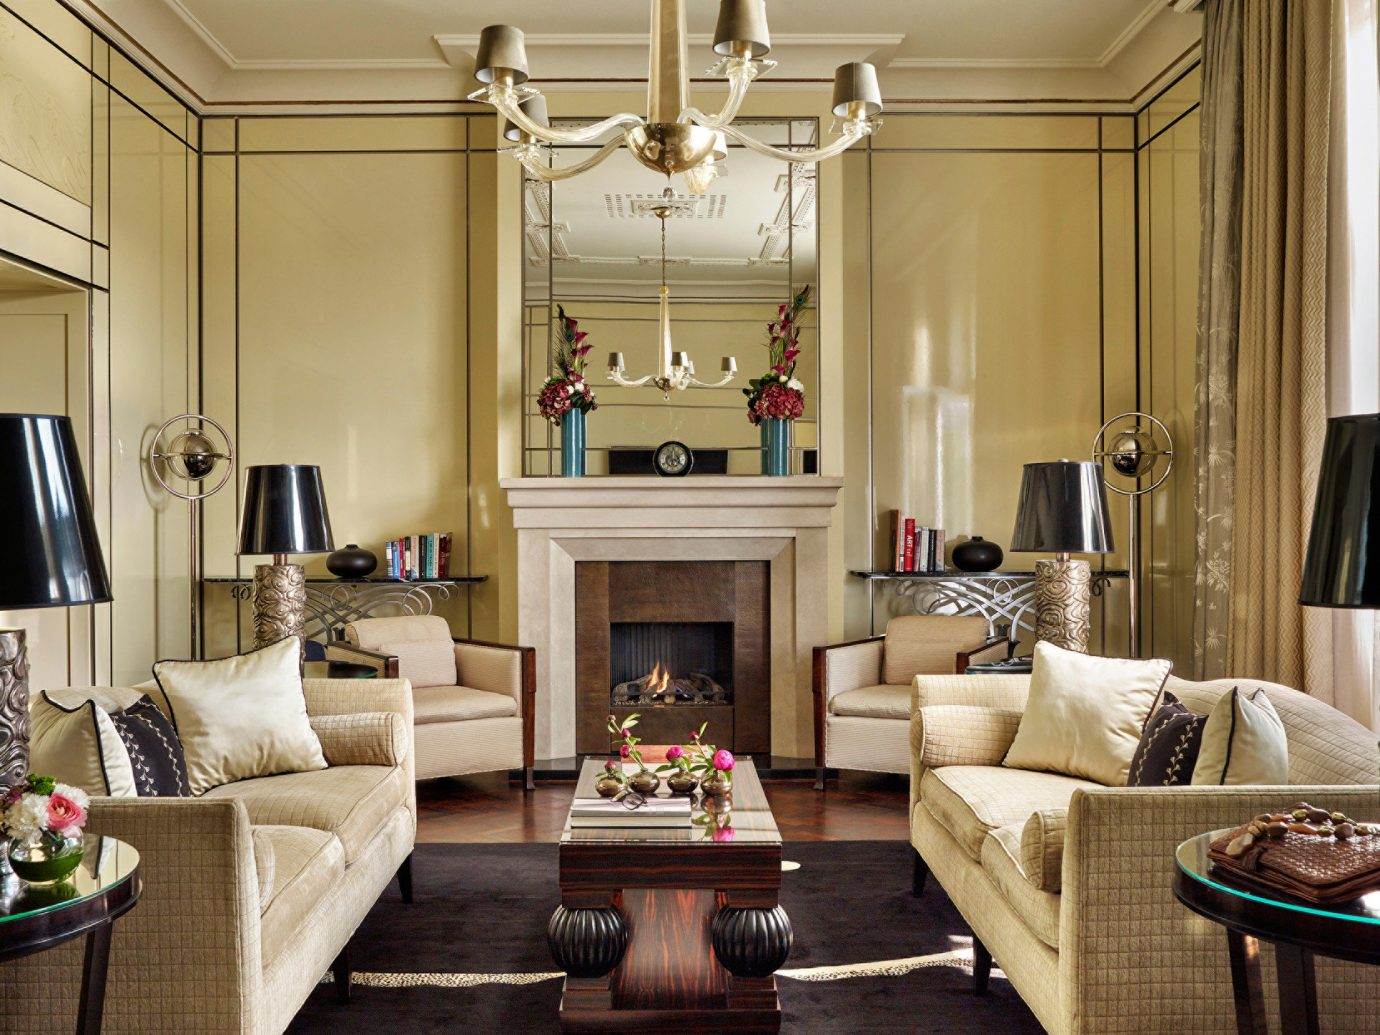 Budapest cozy Elegant europe extravagant fancy Fireplace homey Hotels Hungary interior living area living room Lounge Luxury regal sophisticated Suite indoor Living wall room table sofa floor window home interior design furniture estate hardwood ceiling mansion decorated area